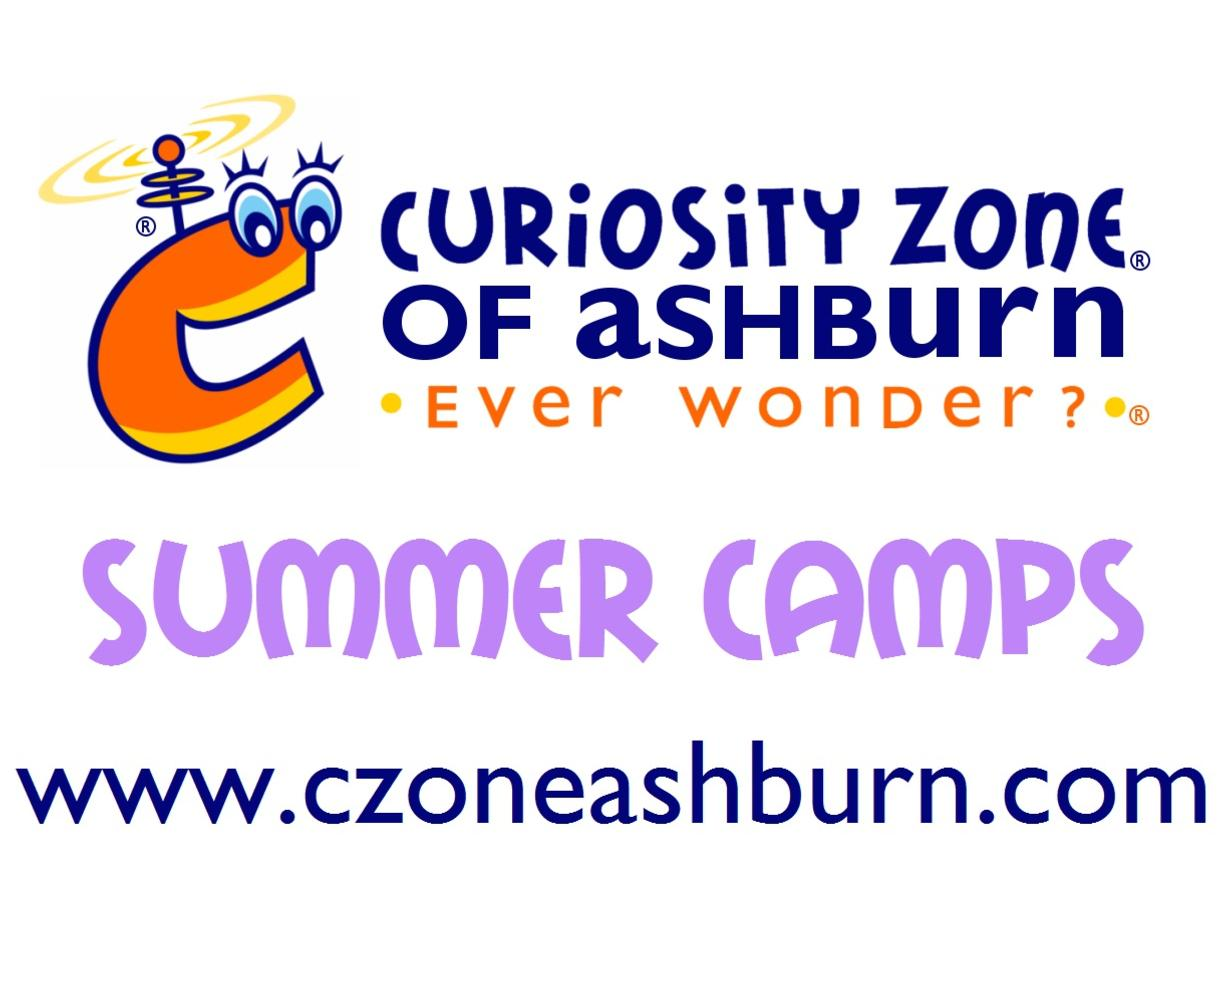 $185+ for CURIOSITY ZONE Science Camp for Ages 4-10 in Ashburn (26% Off)